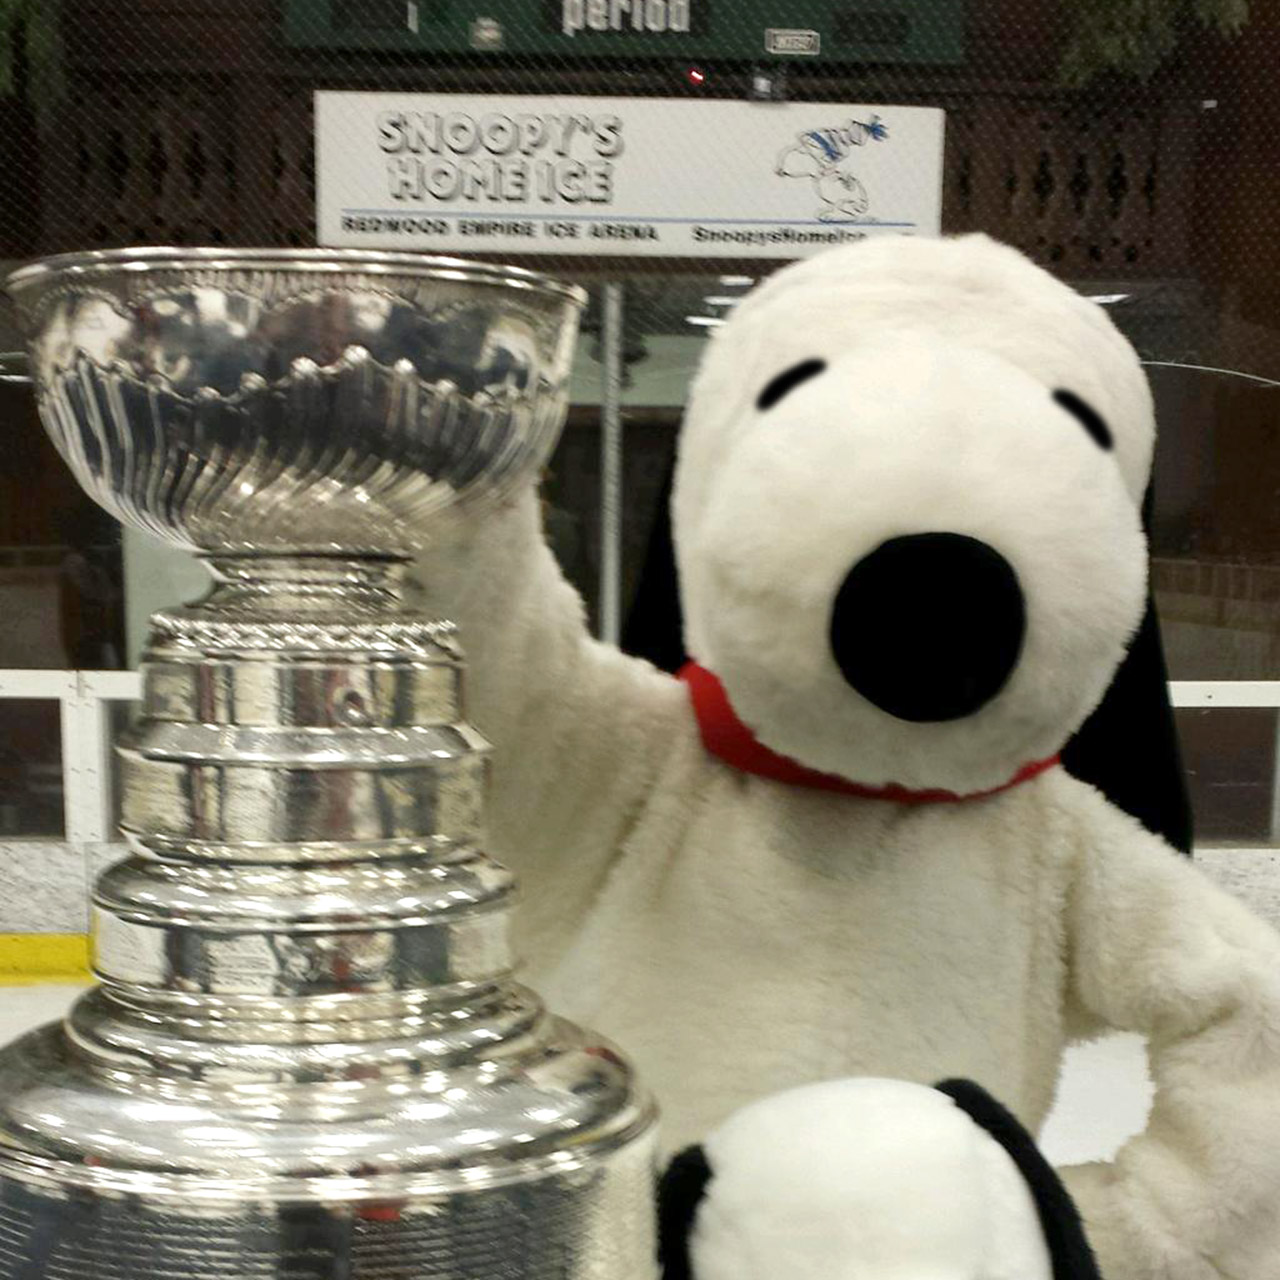 Snoopy posing with the Stanley Cup